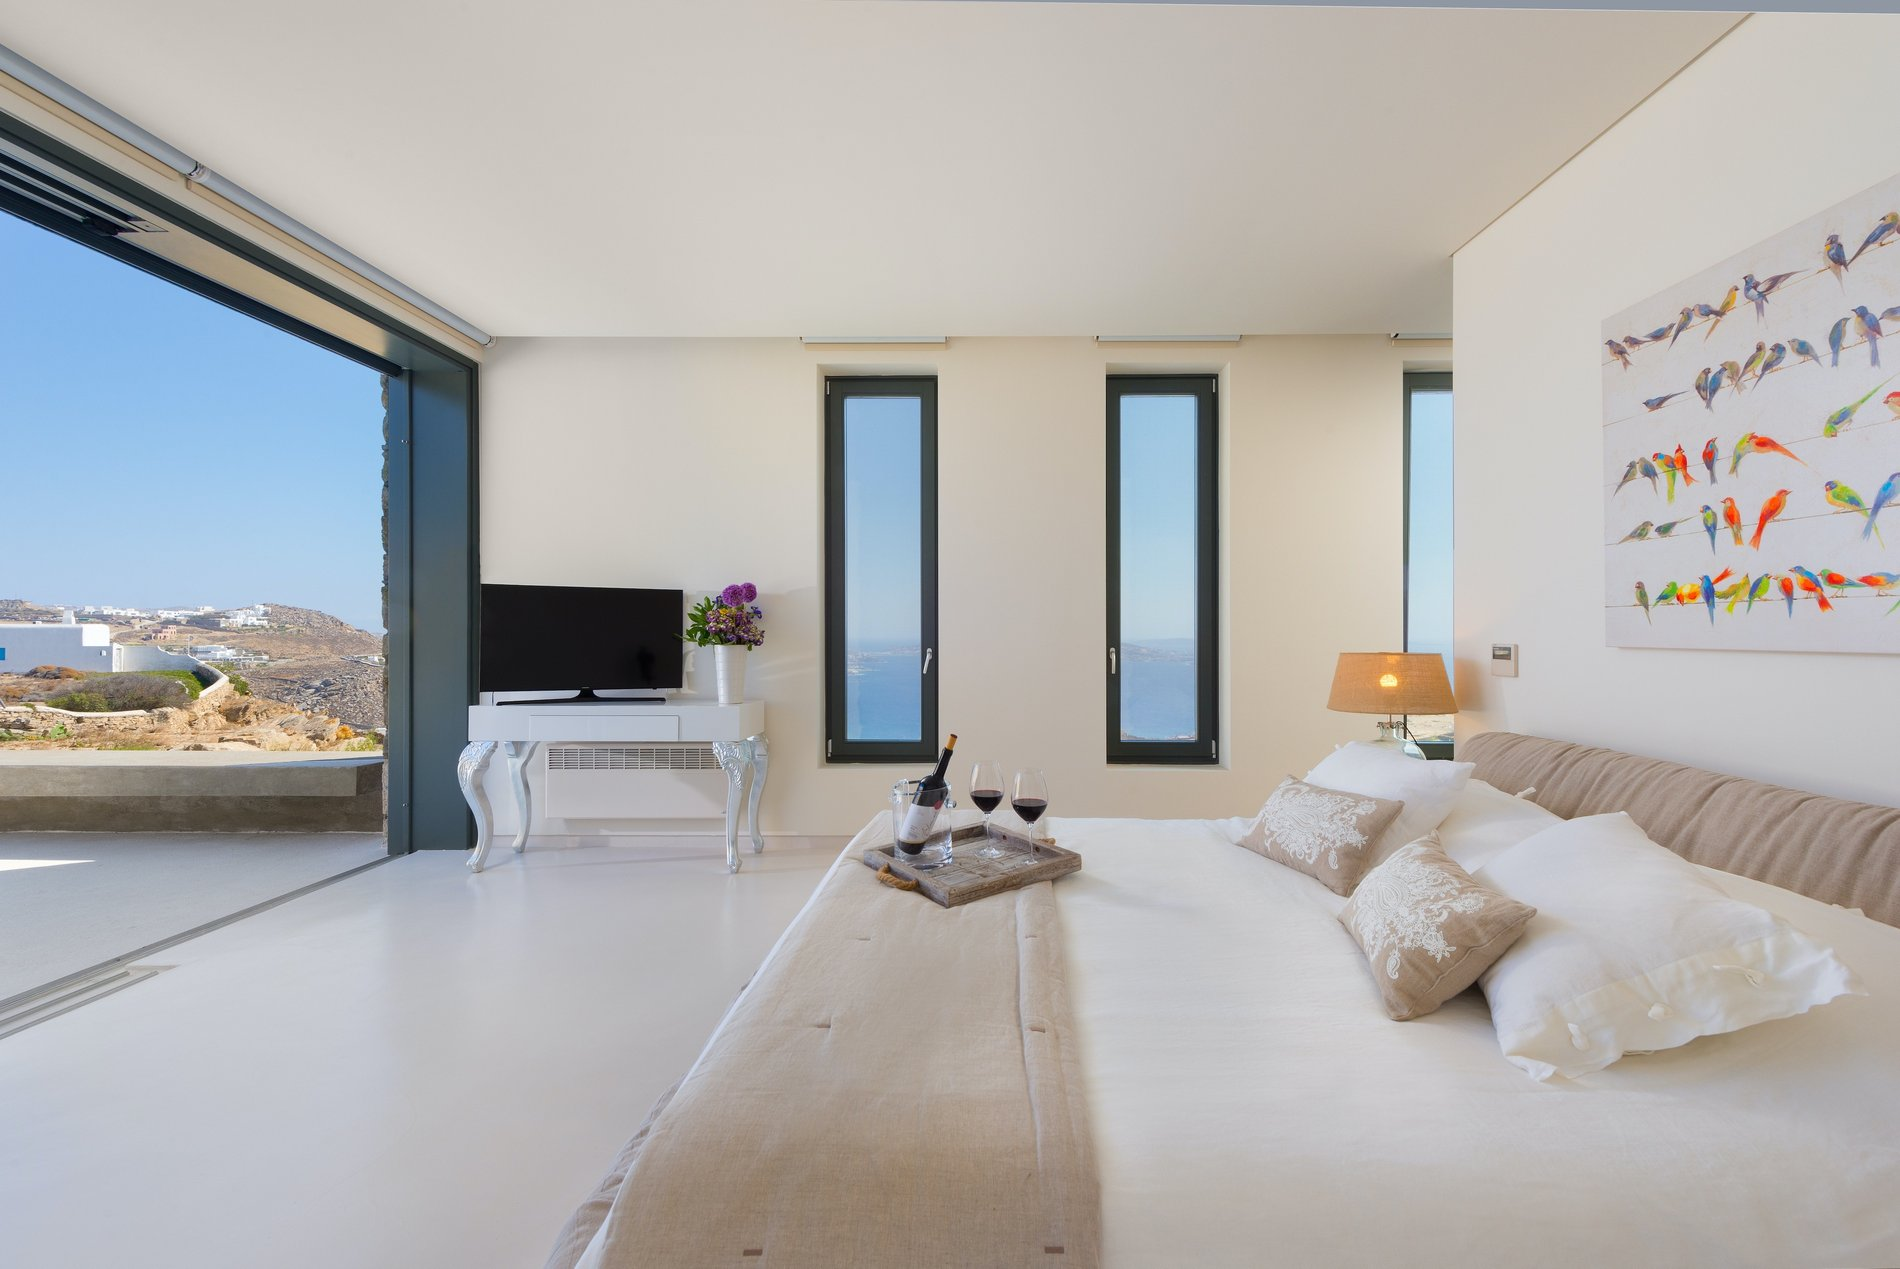 Masted bedroom with a gliding recessed glass door and view of the Mediterranean.